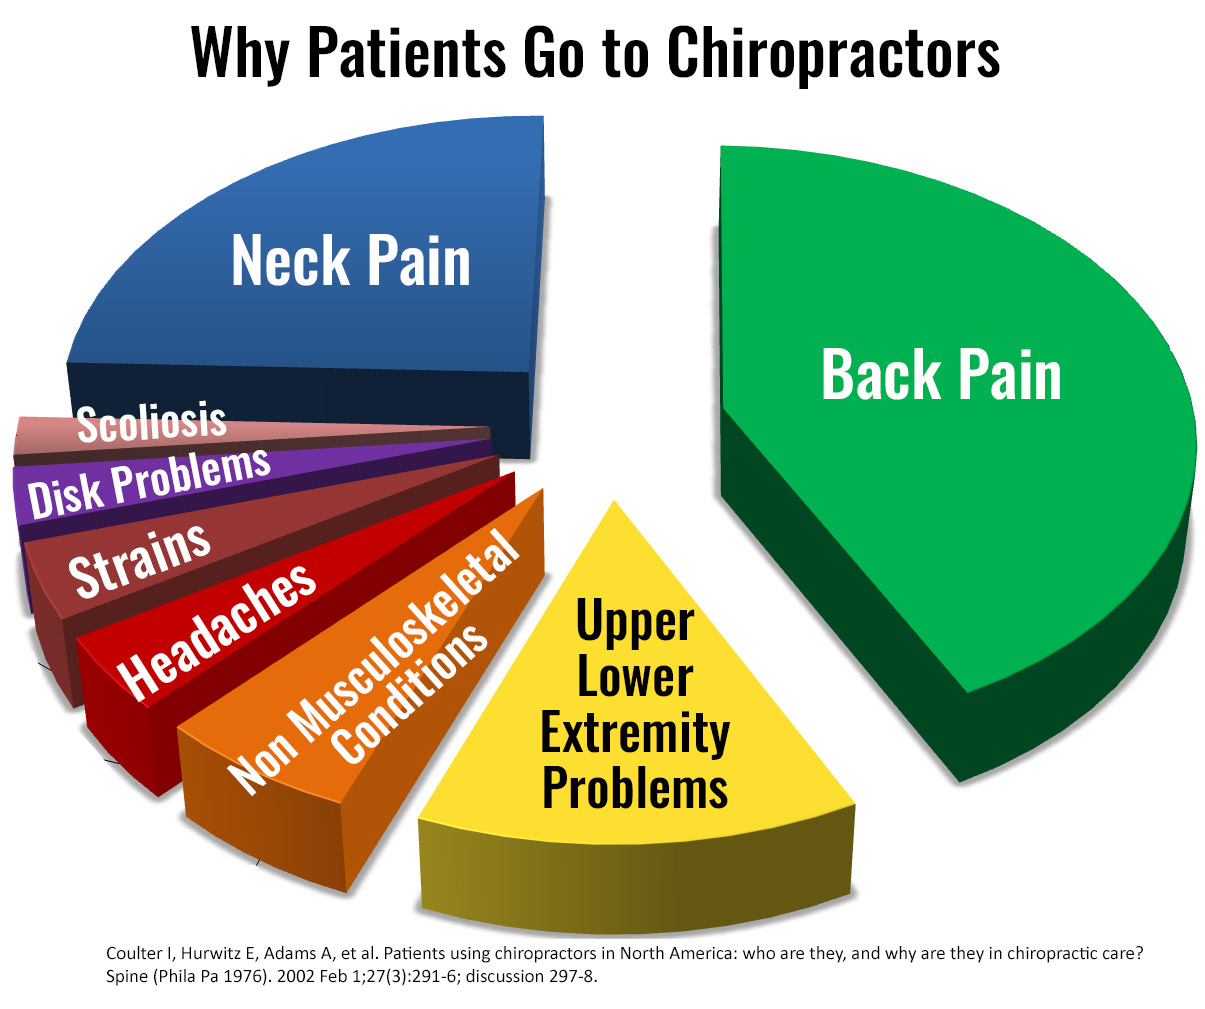 Why do people go to Chiropractors?